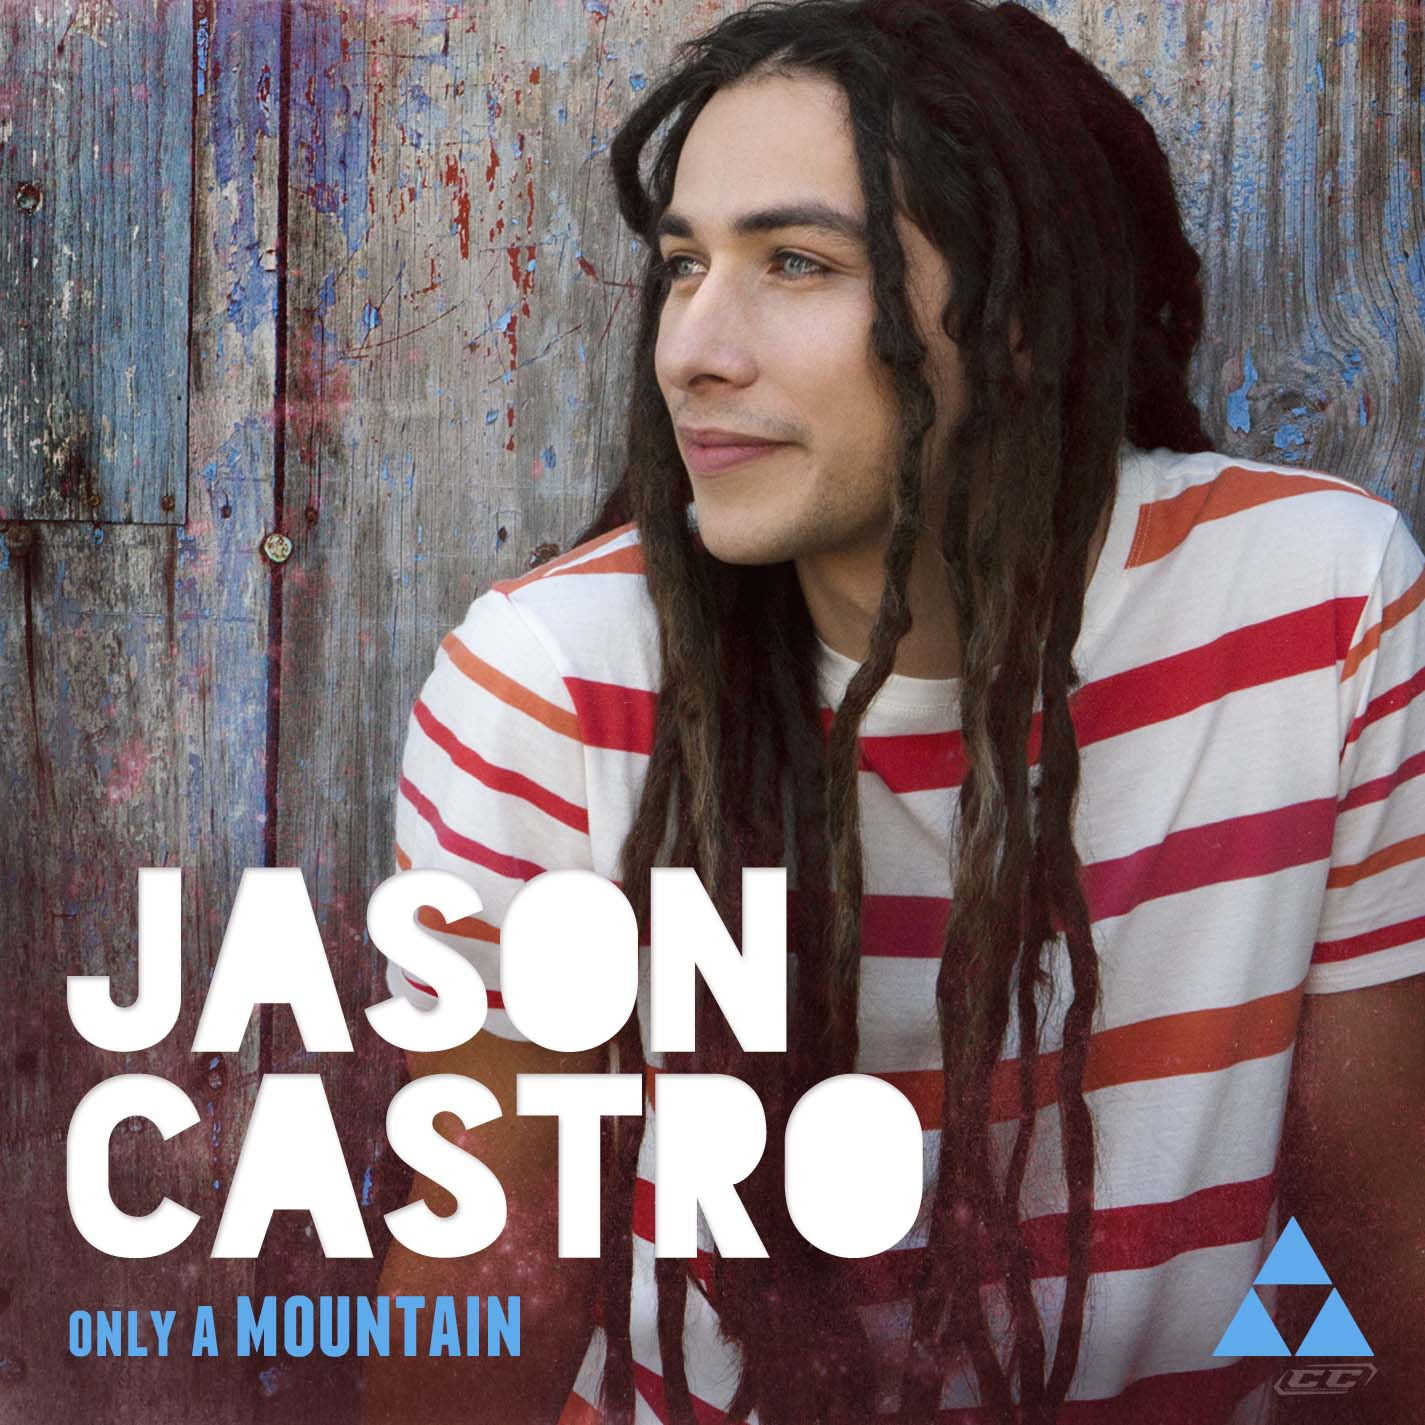 Jason Castro - Only A Mountain 2013 English Christian Album Download